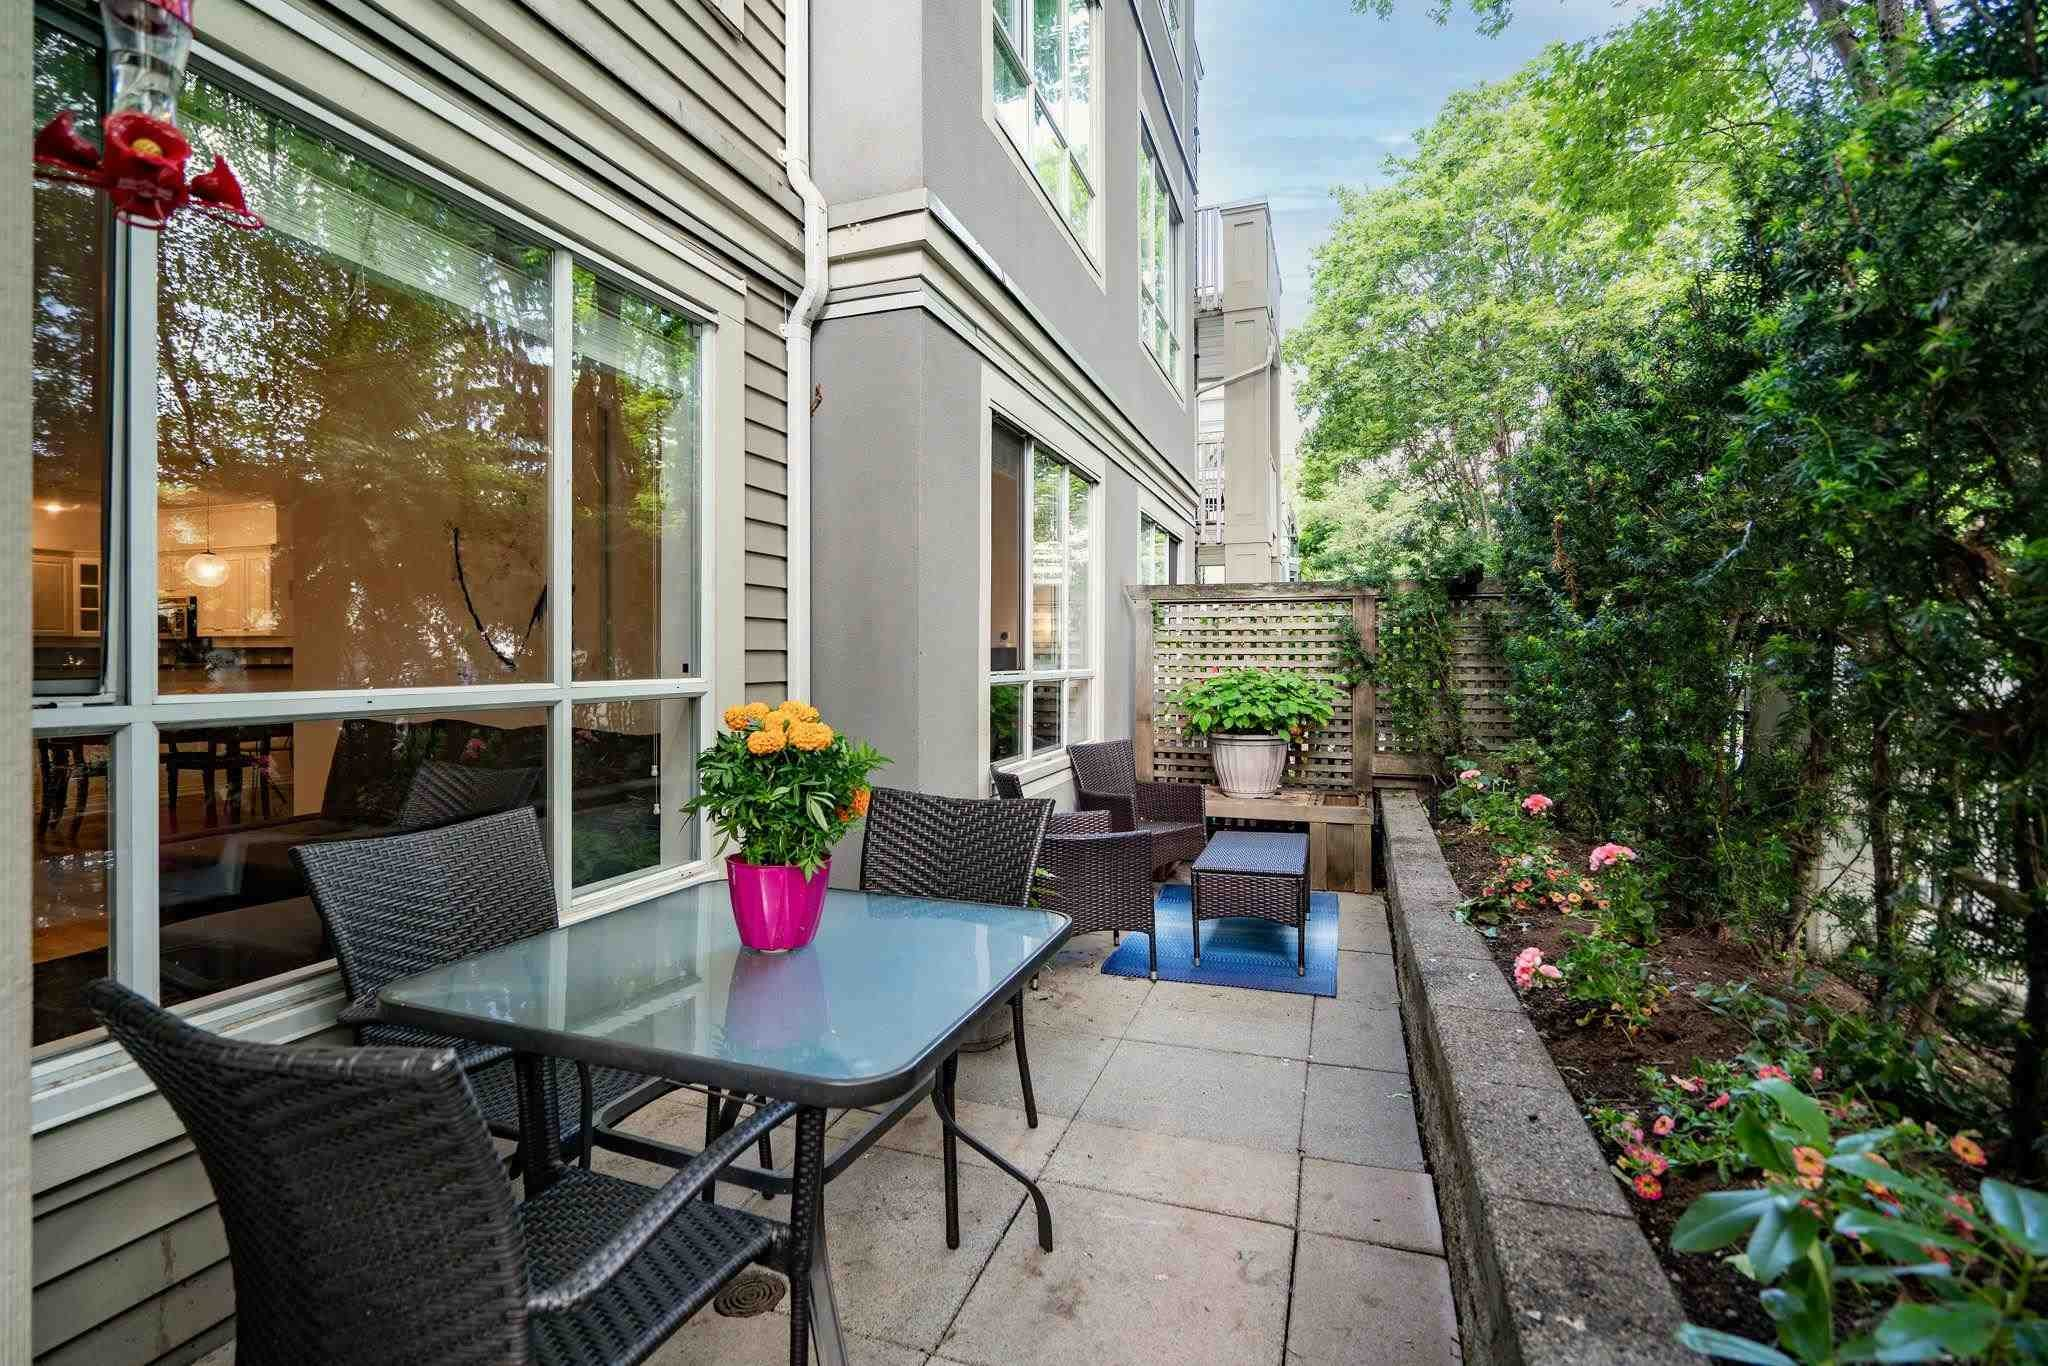 109 2755 MAPLE STREET - Kitsilano Townhouse for sale, 2 Bedrooms (R2600990) - #1